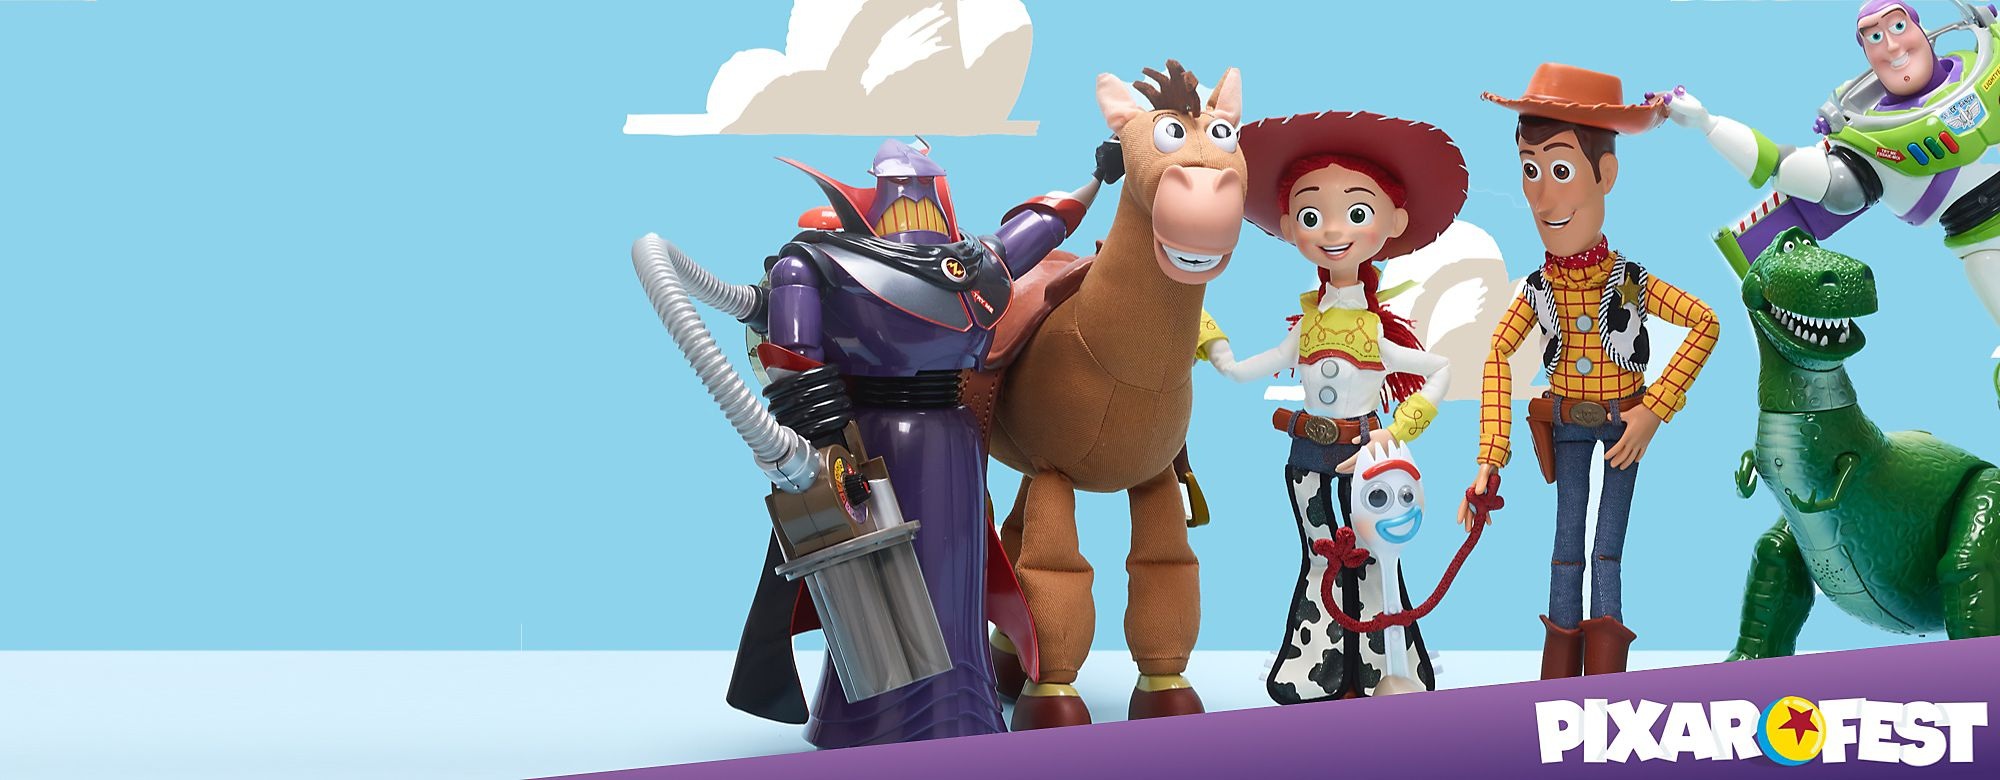 Pixar Fest To celebrate 25 years of Pixar filmmaking,